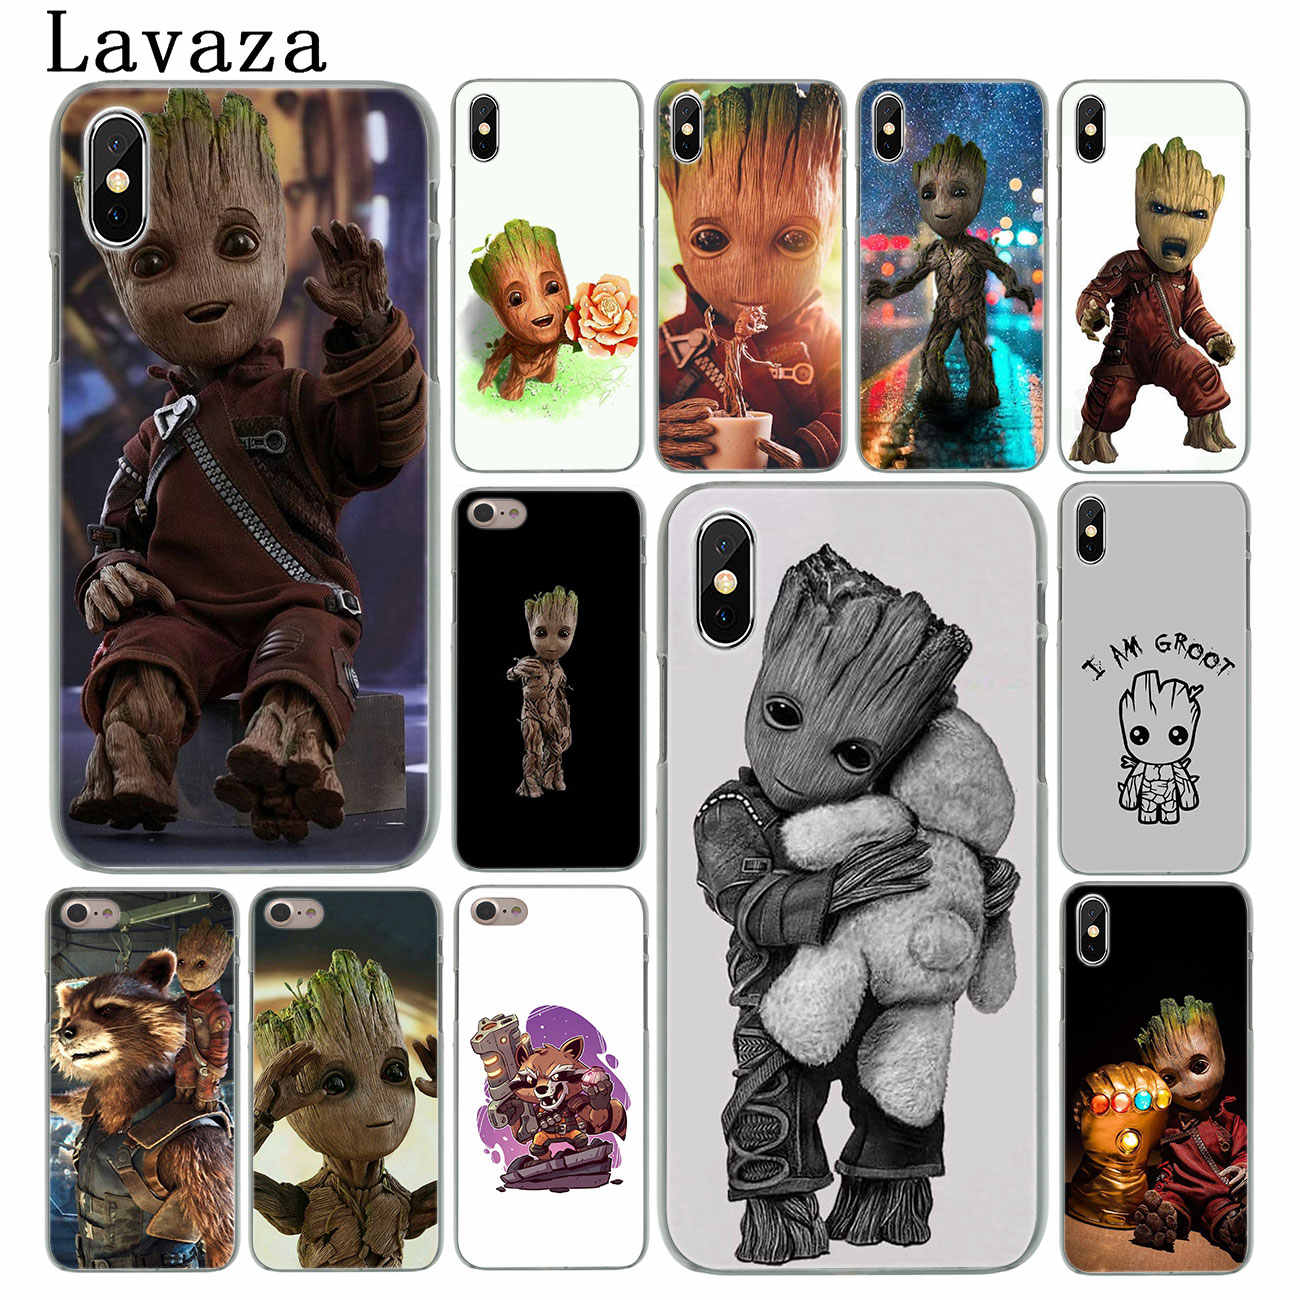 Чехол Lavaza guardiers of the for Galaxy Marvel для телефона Apple iPhone XS Max X XR 6 6 S 7 8 Plus 5 5S SE 5C 4S 10